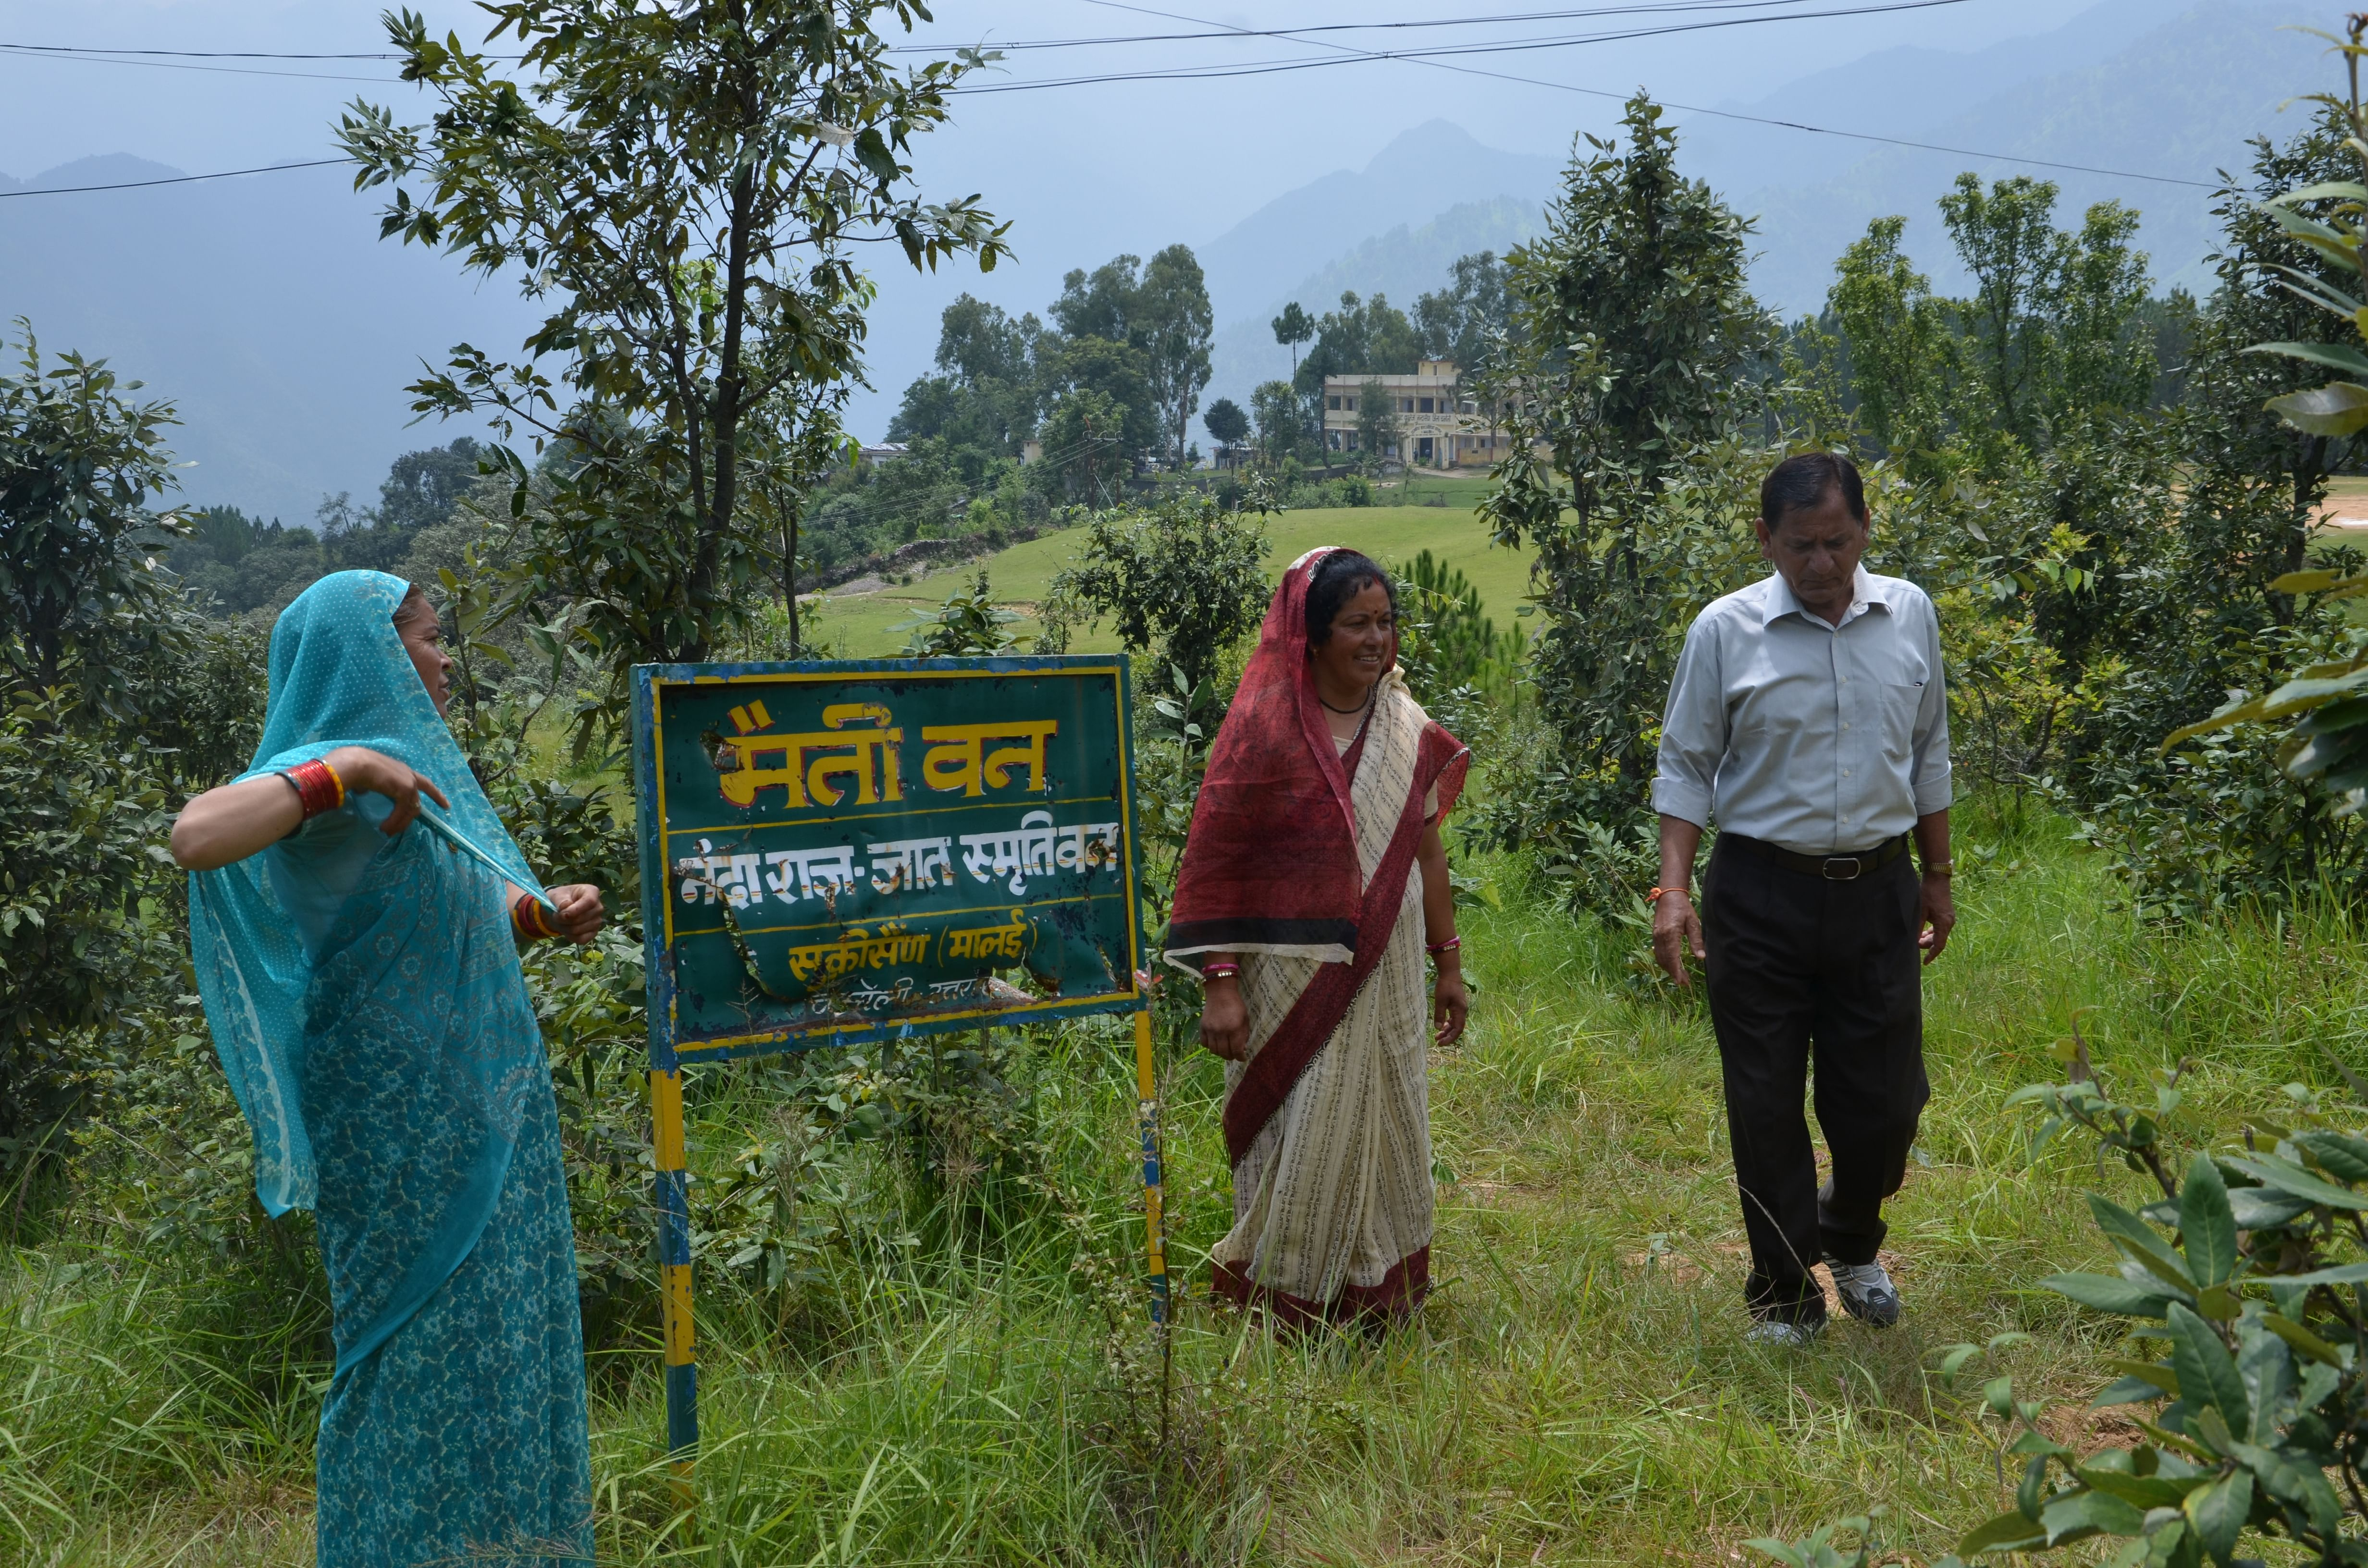 Sulochana (left) and Devaki (middle) with Kalyan Singh at the 'Maiti Van' near their Bagoli village in Chamoli district. It was Singh who started this unique tree plantation drive. (Credit: Nitin Jugran Bahuguna\WFS)